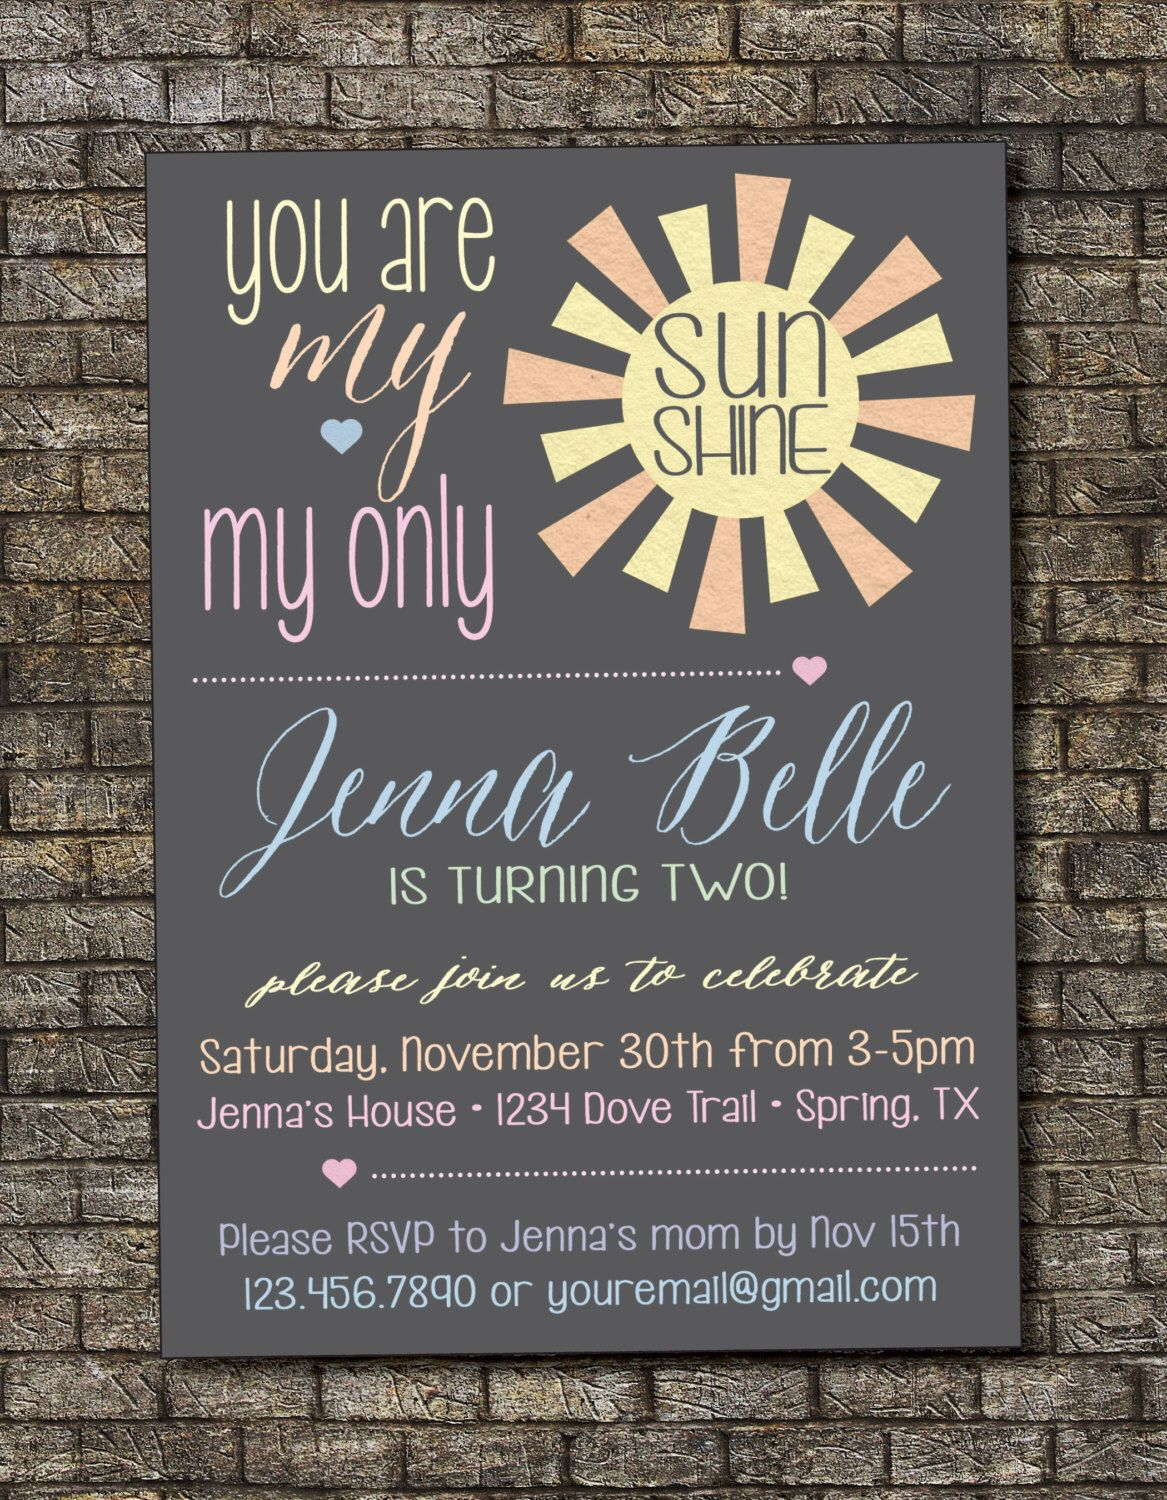 second wedding invitations wording%0A You Are My Sunshine Birthday Invitation  Rainbow Girl Birthday Party  Invitation  First Birthday  Second Birthday  Digital Printable